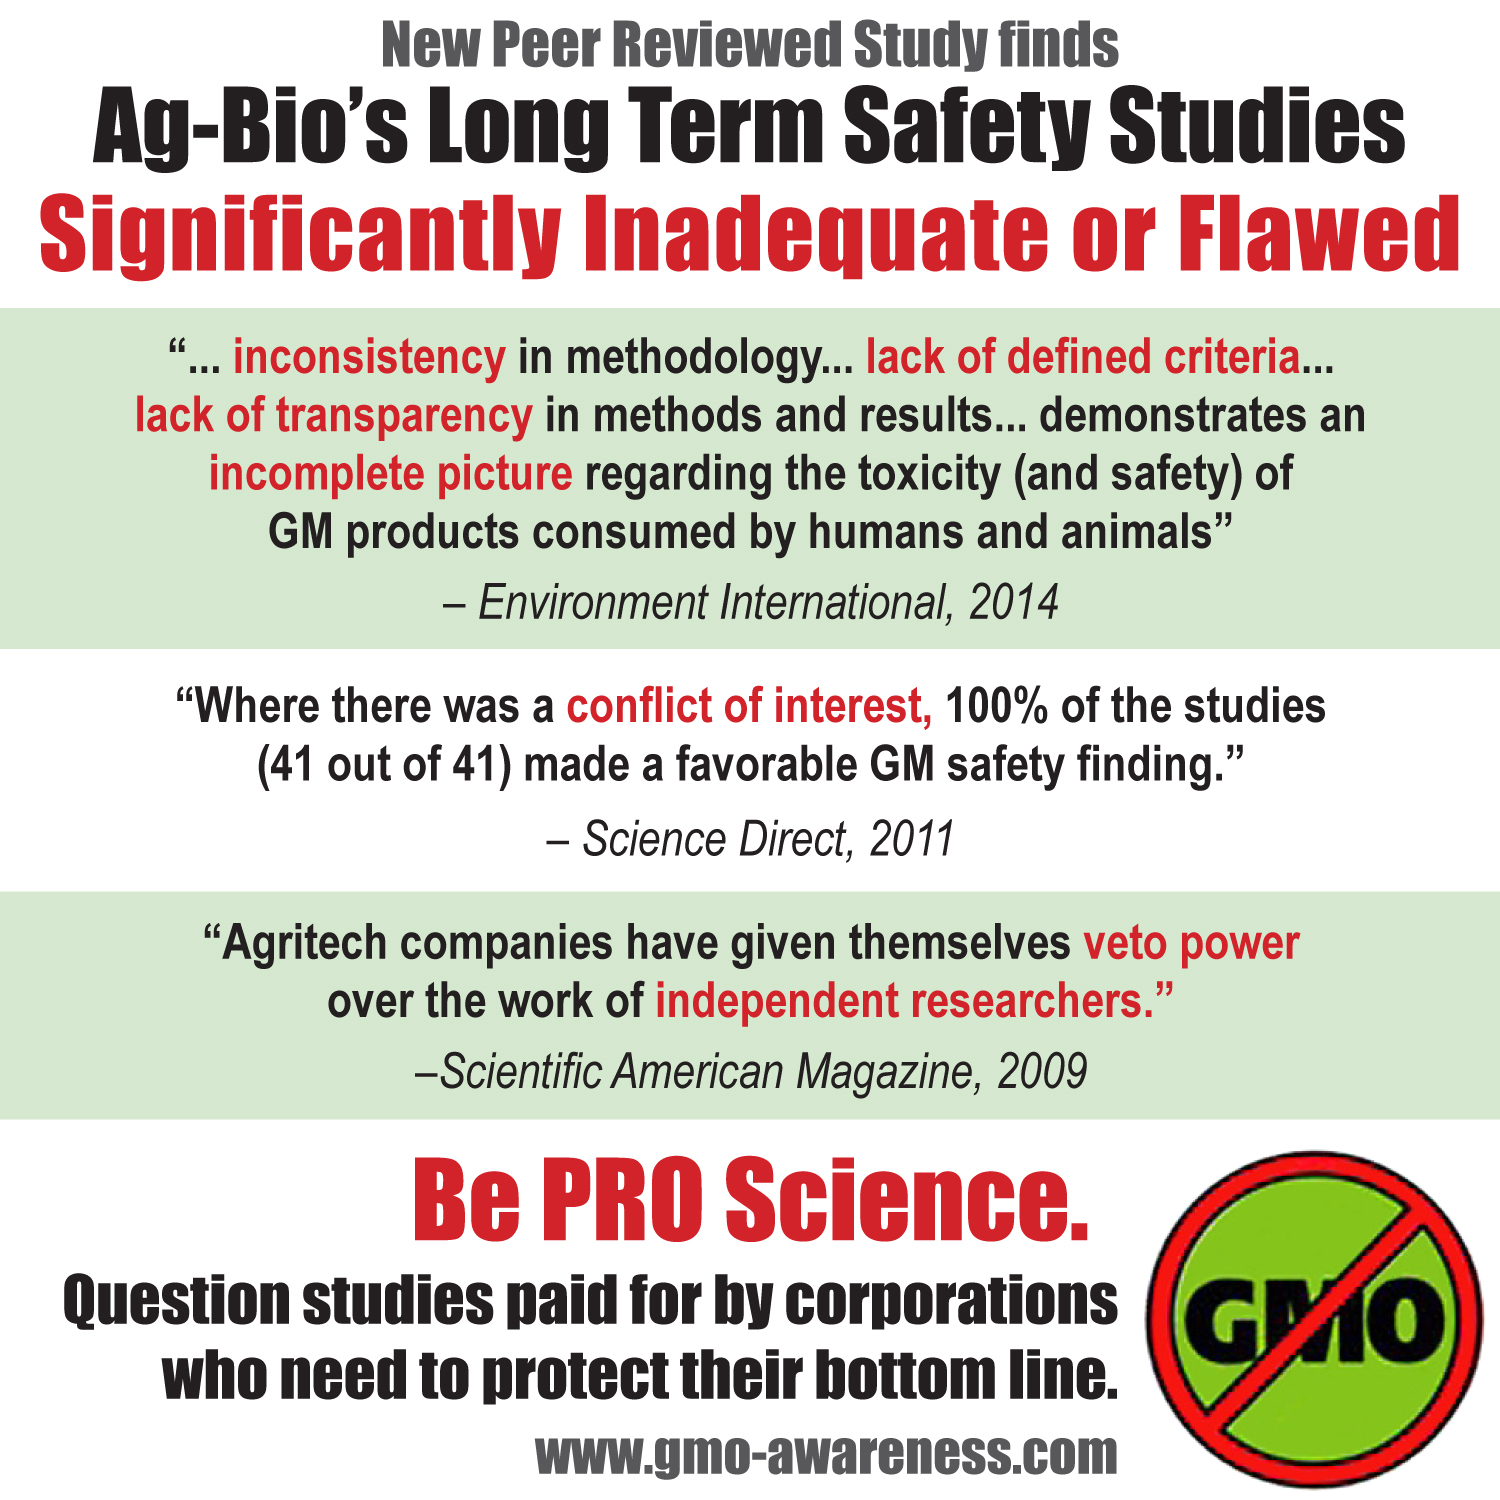 gmo awareness | raising awareness about the risks of genetically